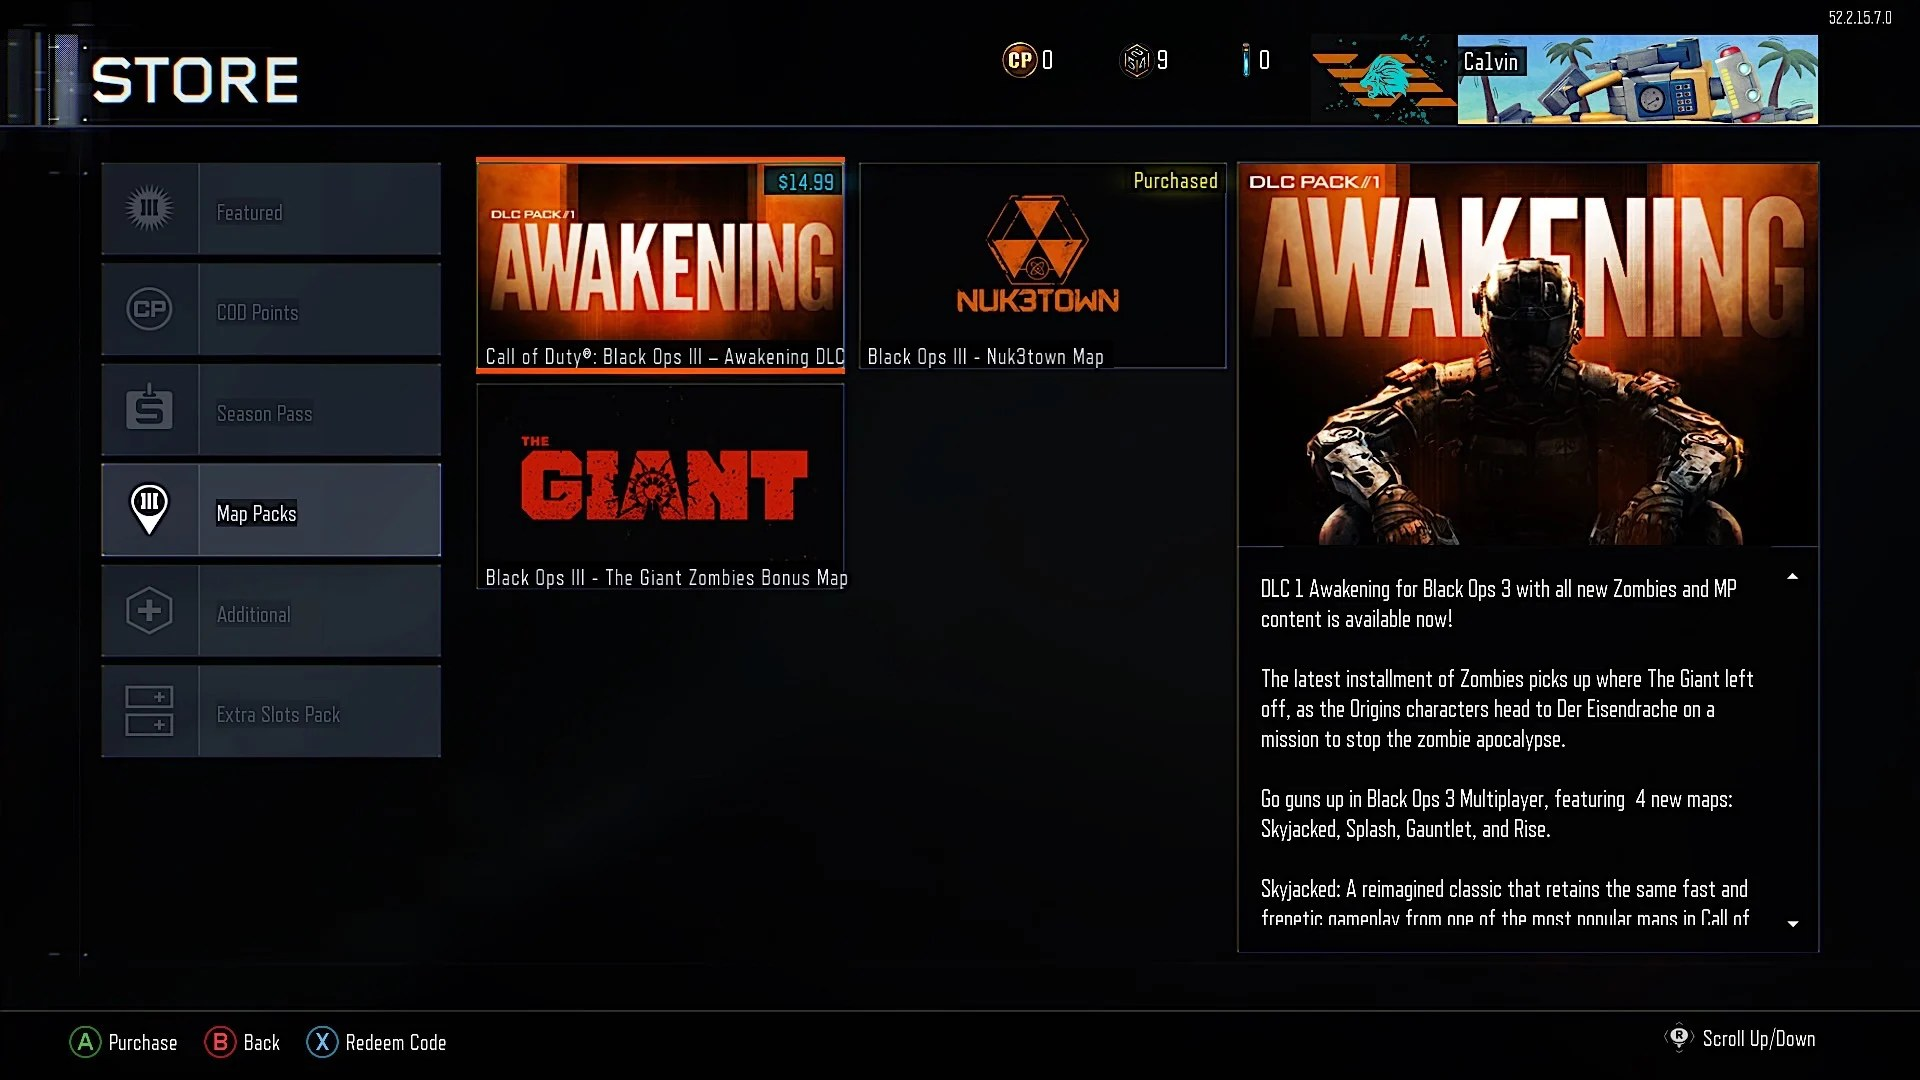 How to Download Awakening Black Ops 3 DLC